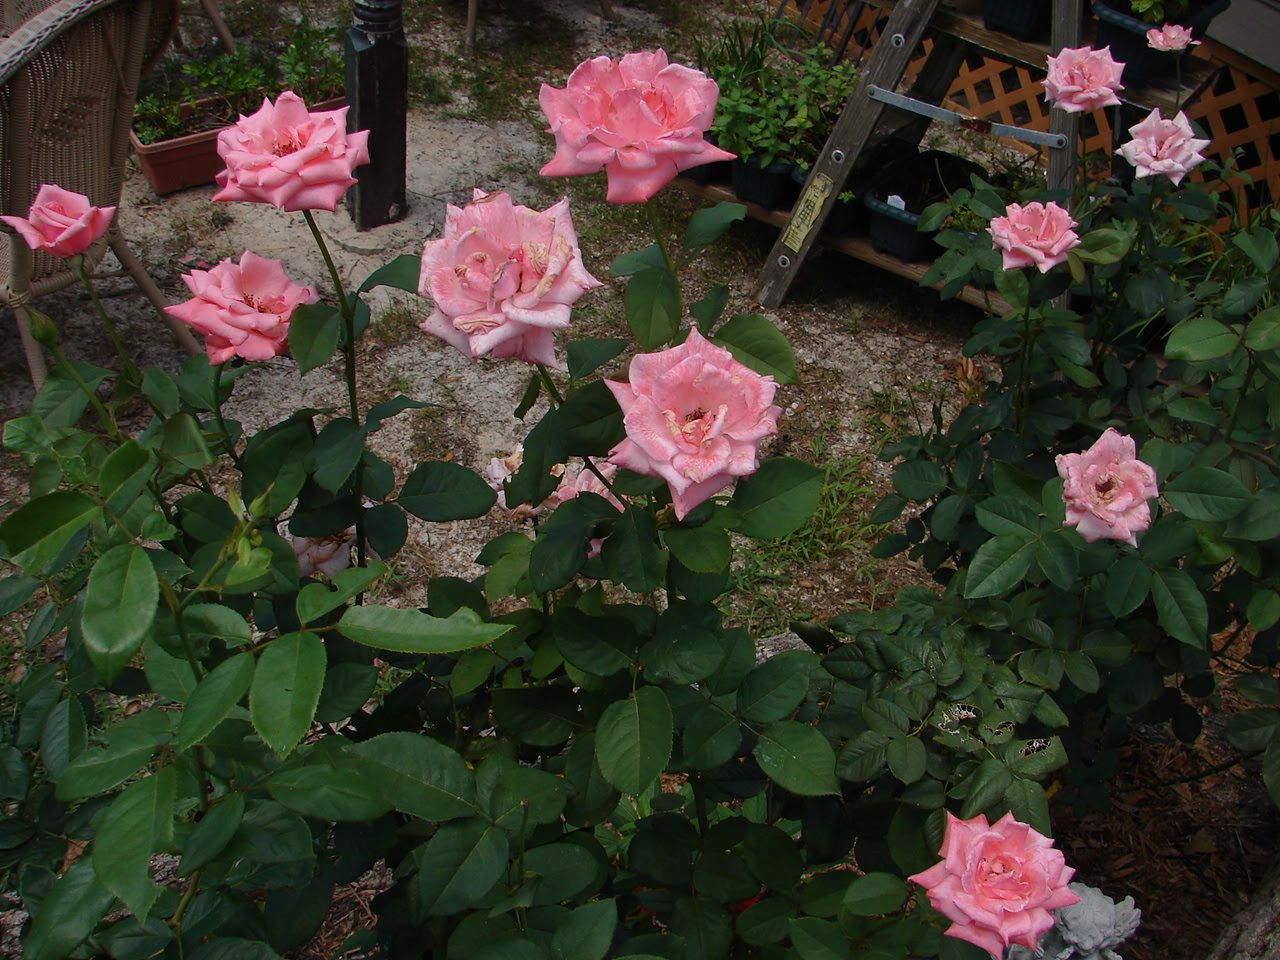 Queen Elizabeth Rose Grandiflora Queen Elizabeth II was born on